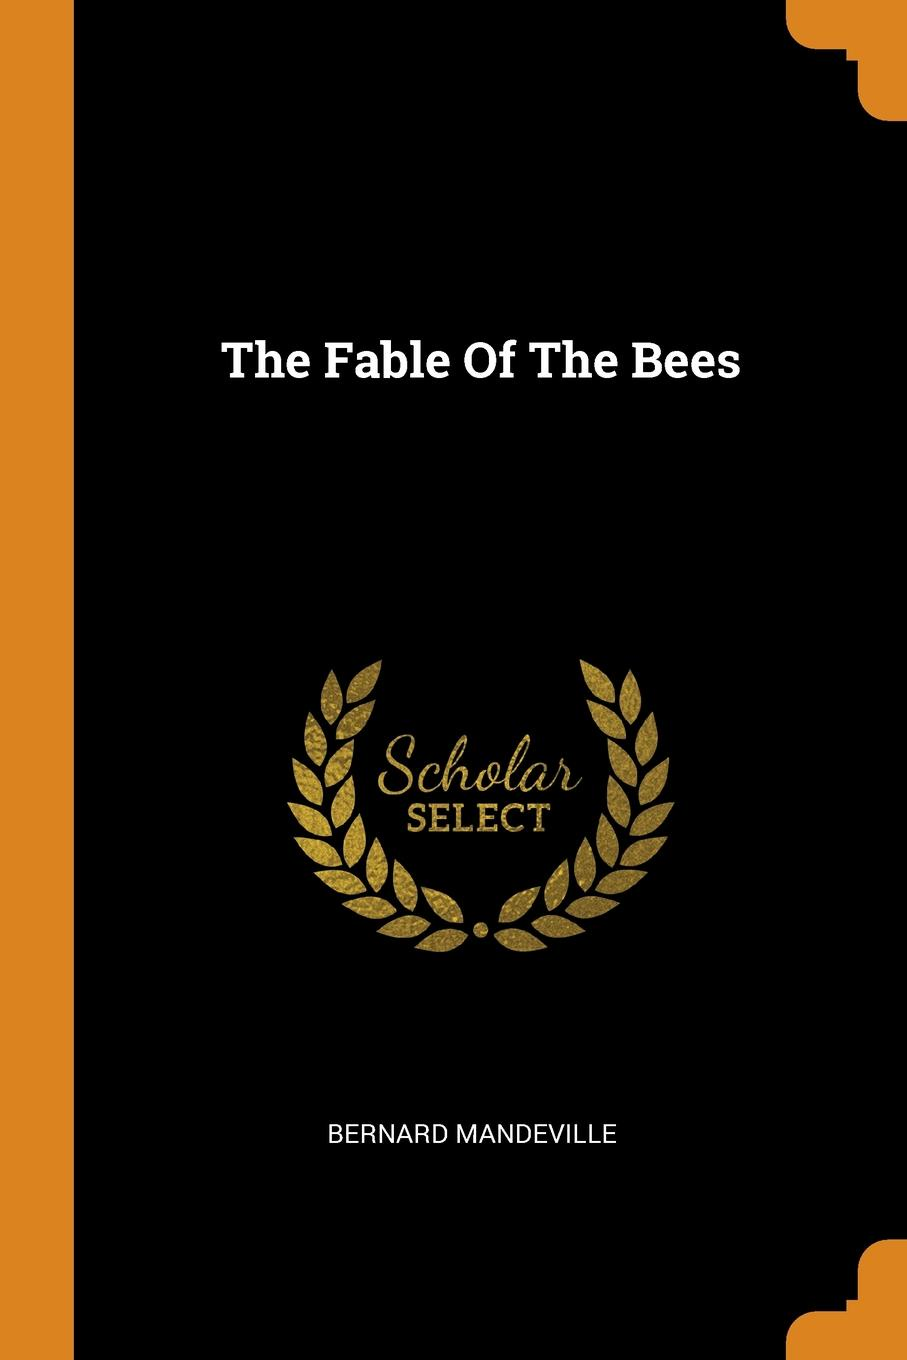 Bernard Mandeville The Fable Of The Bees